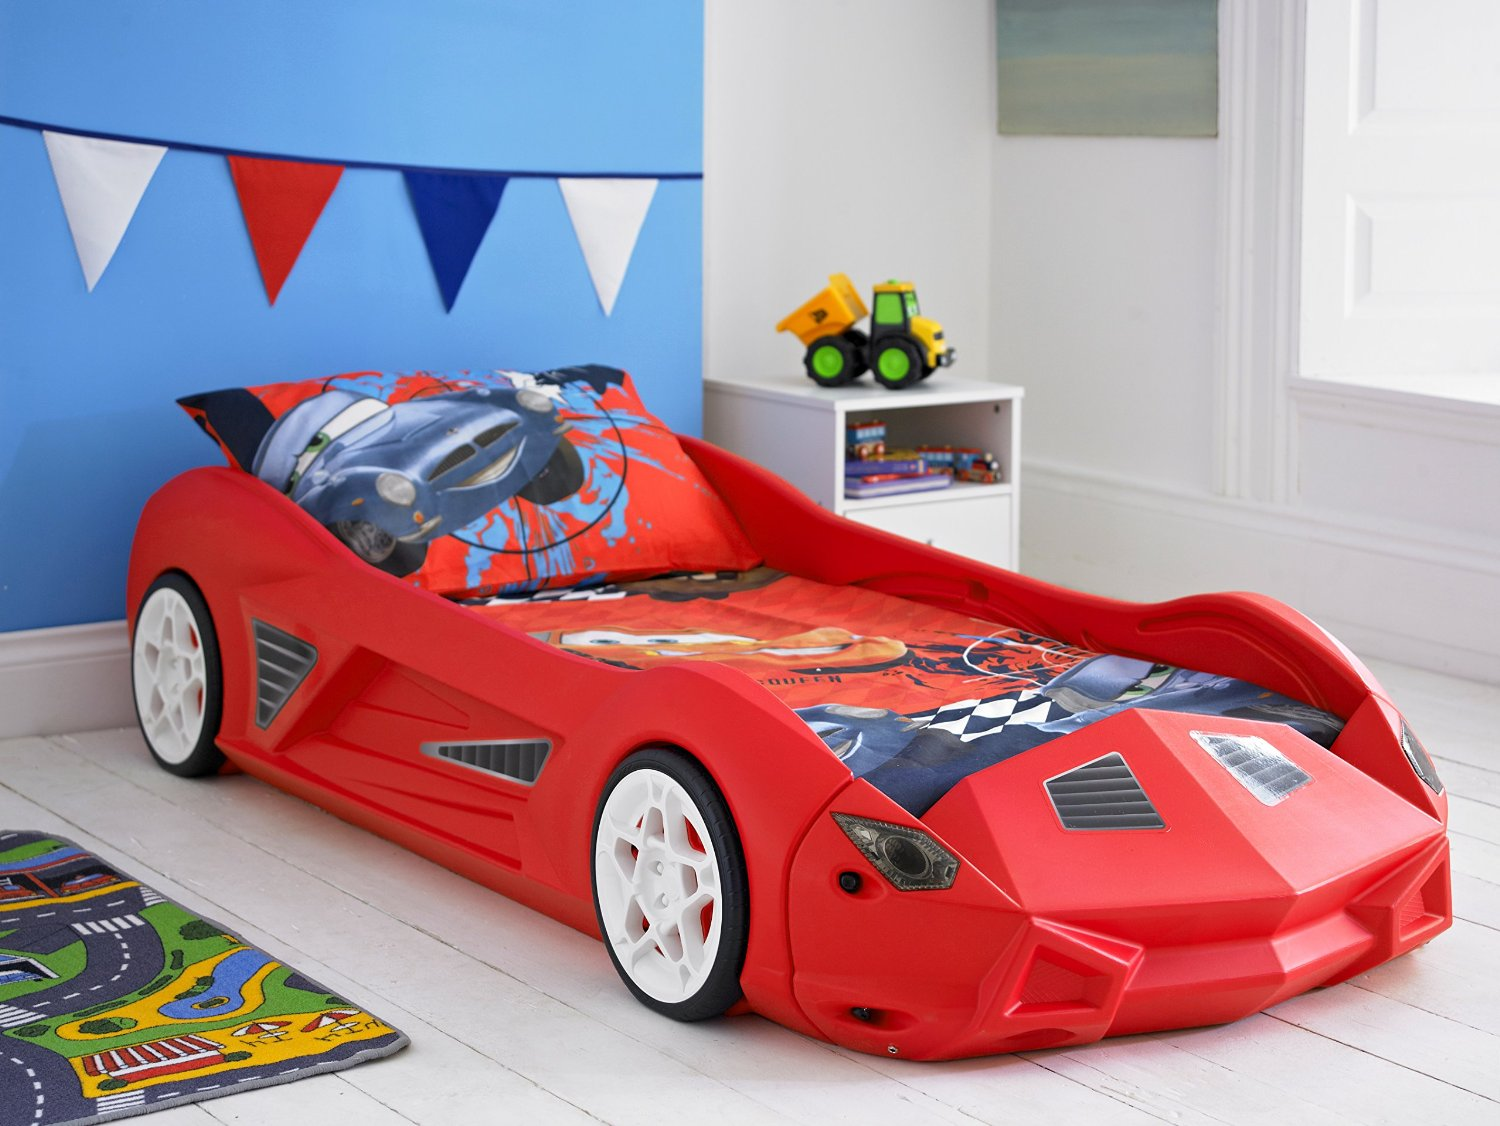 Picture of: Picture of Race Car Toddler Bed